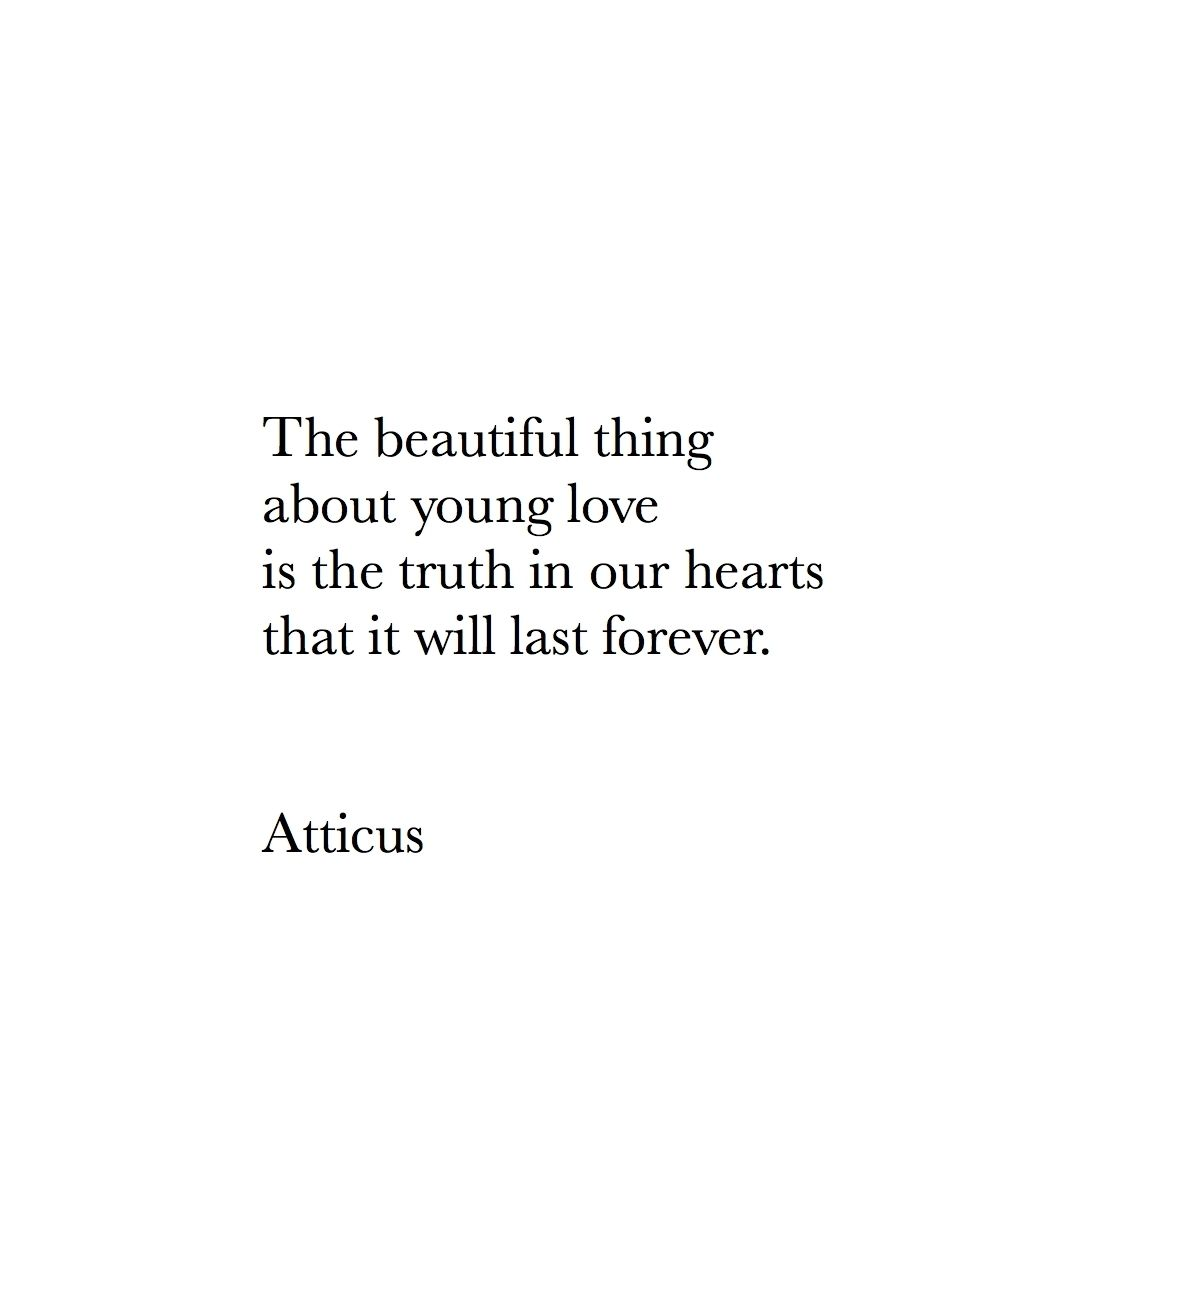 Young Love Quotes Entrancing Young Love' #atticuspoetry #atticus #love  Quotes  Pinterest